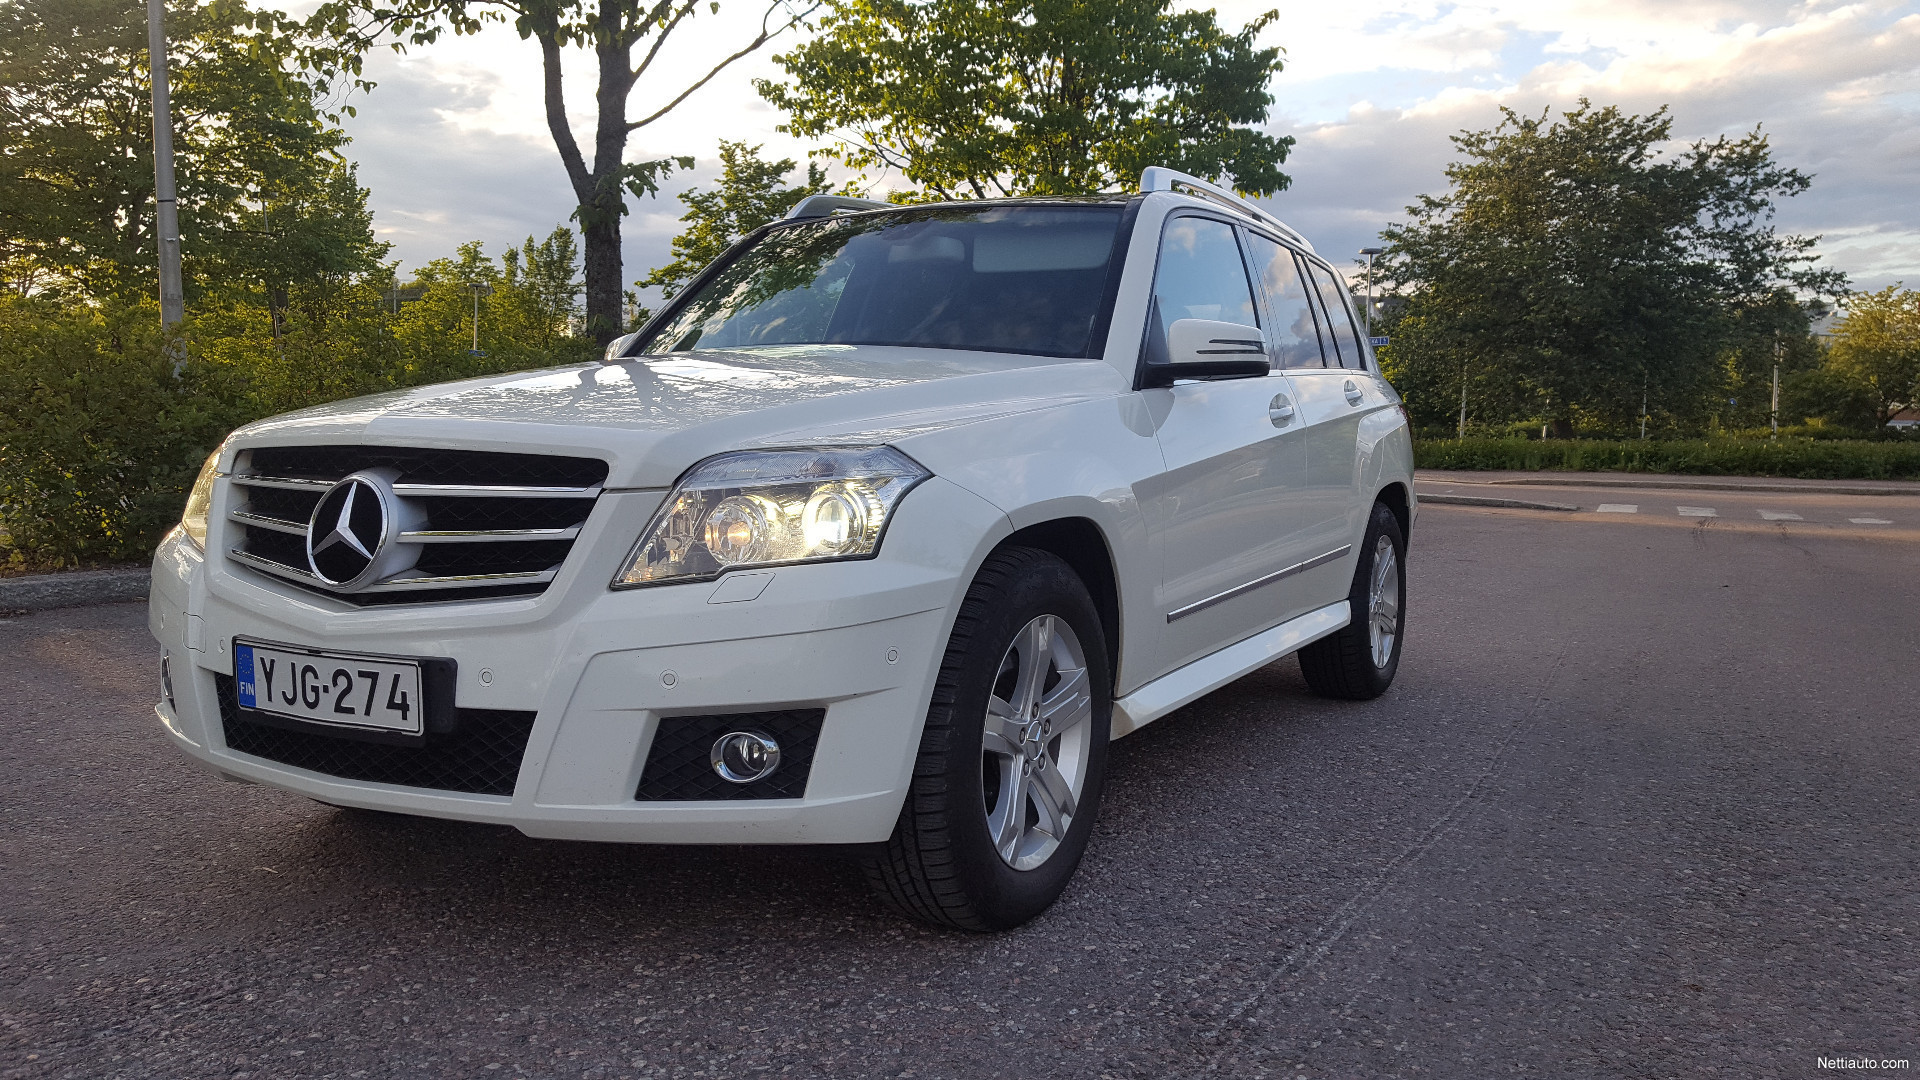 mercedes benz glk 320 cdi 4matic a 4x4 2009 used vehicle nettiauto. Black Bedroom Furniture Sets. Home Design Ideas